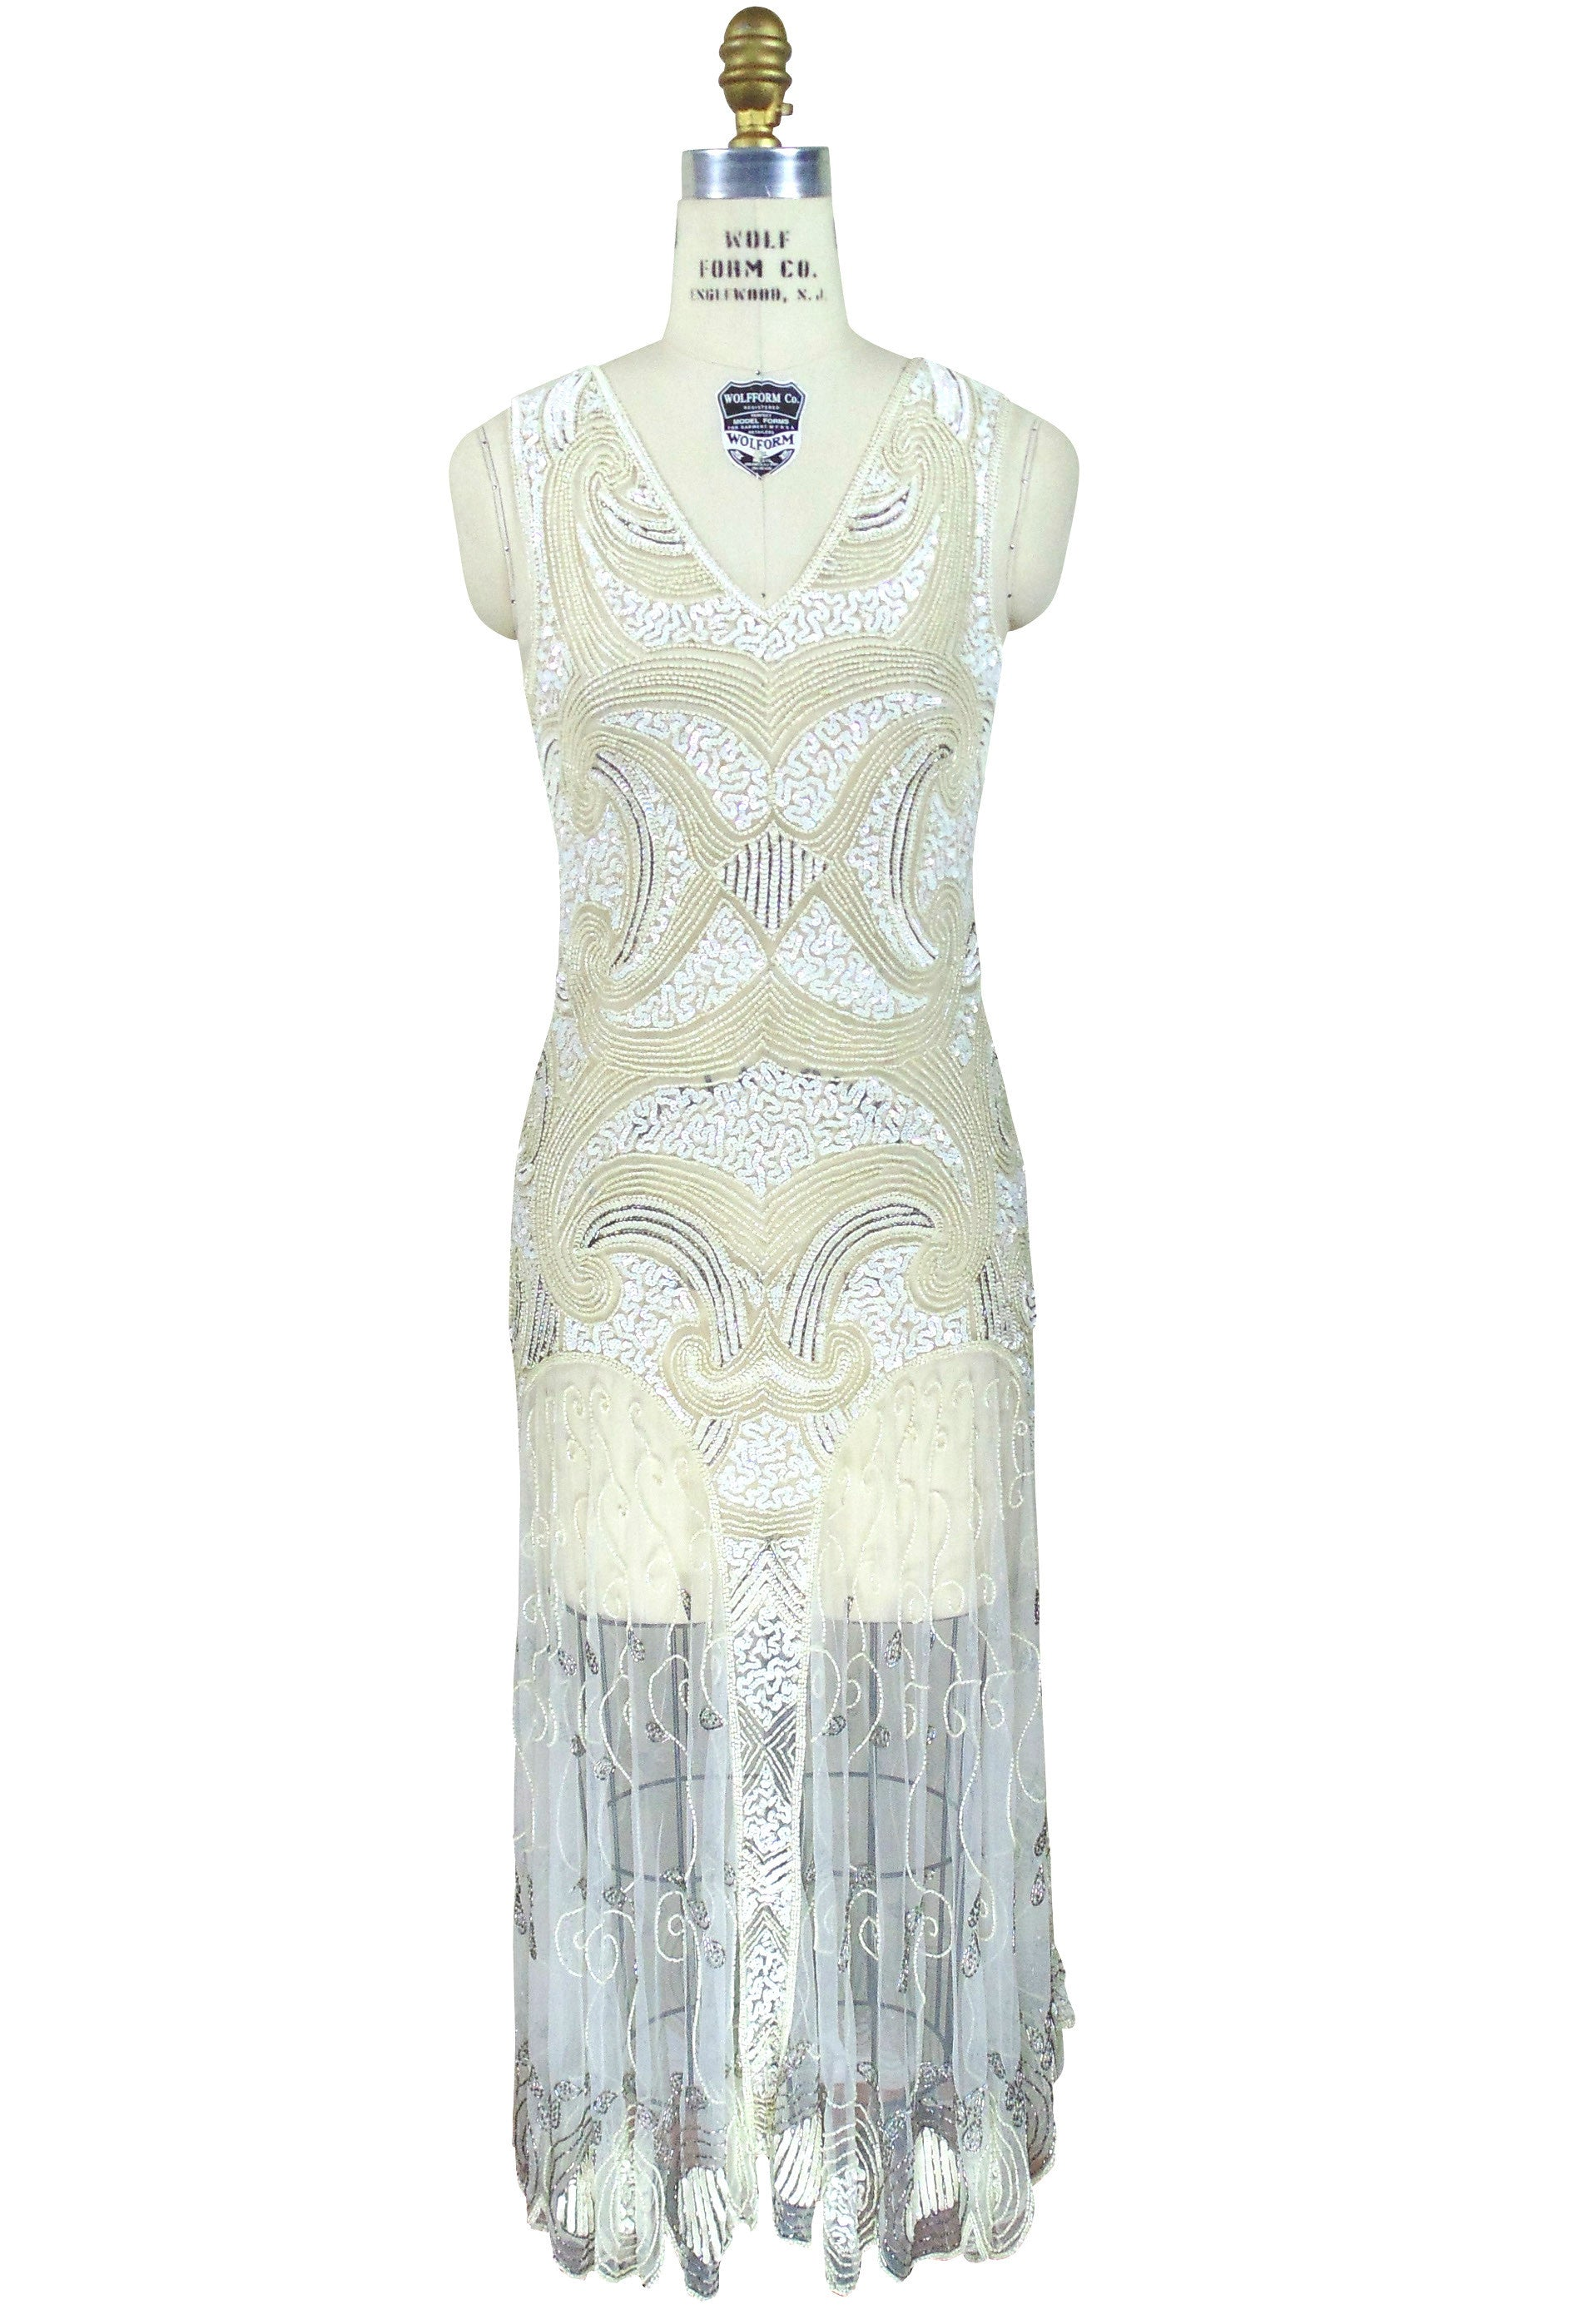 Art Deco Vintage Reproduction 1920u0027s Gown   The Cosmos   Ivory   The Deco  Haus ...